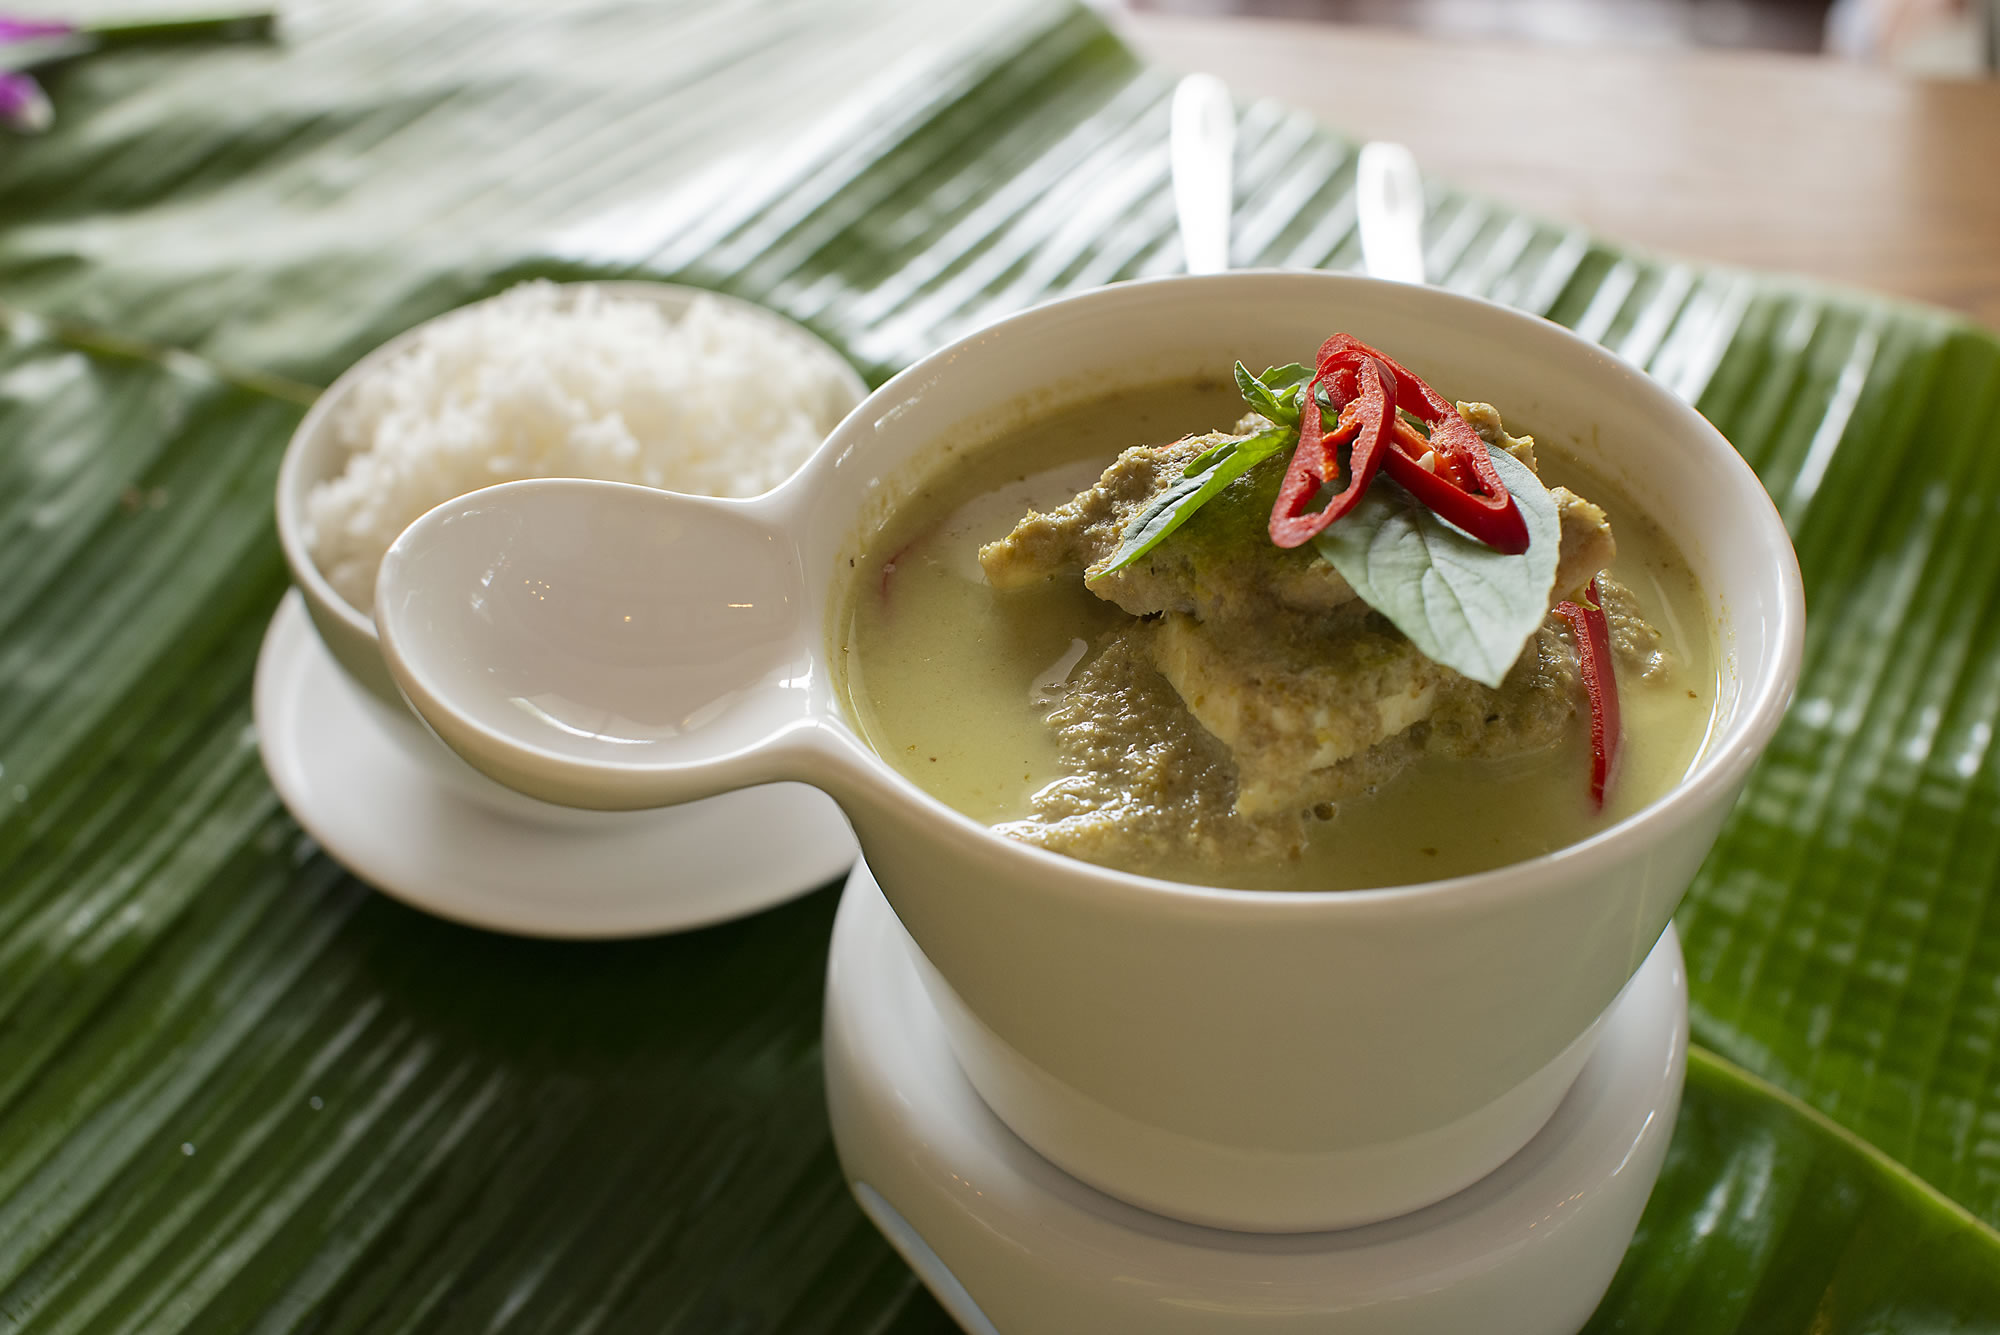 GAENG KIEW WAN GAI/MOO -  Thai green curry with chicken or pork, served with rice